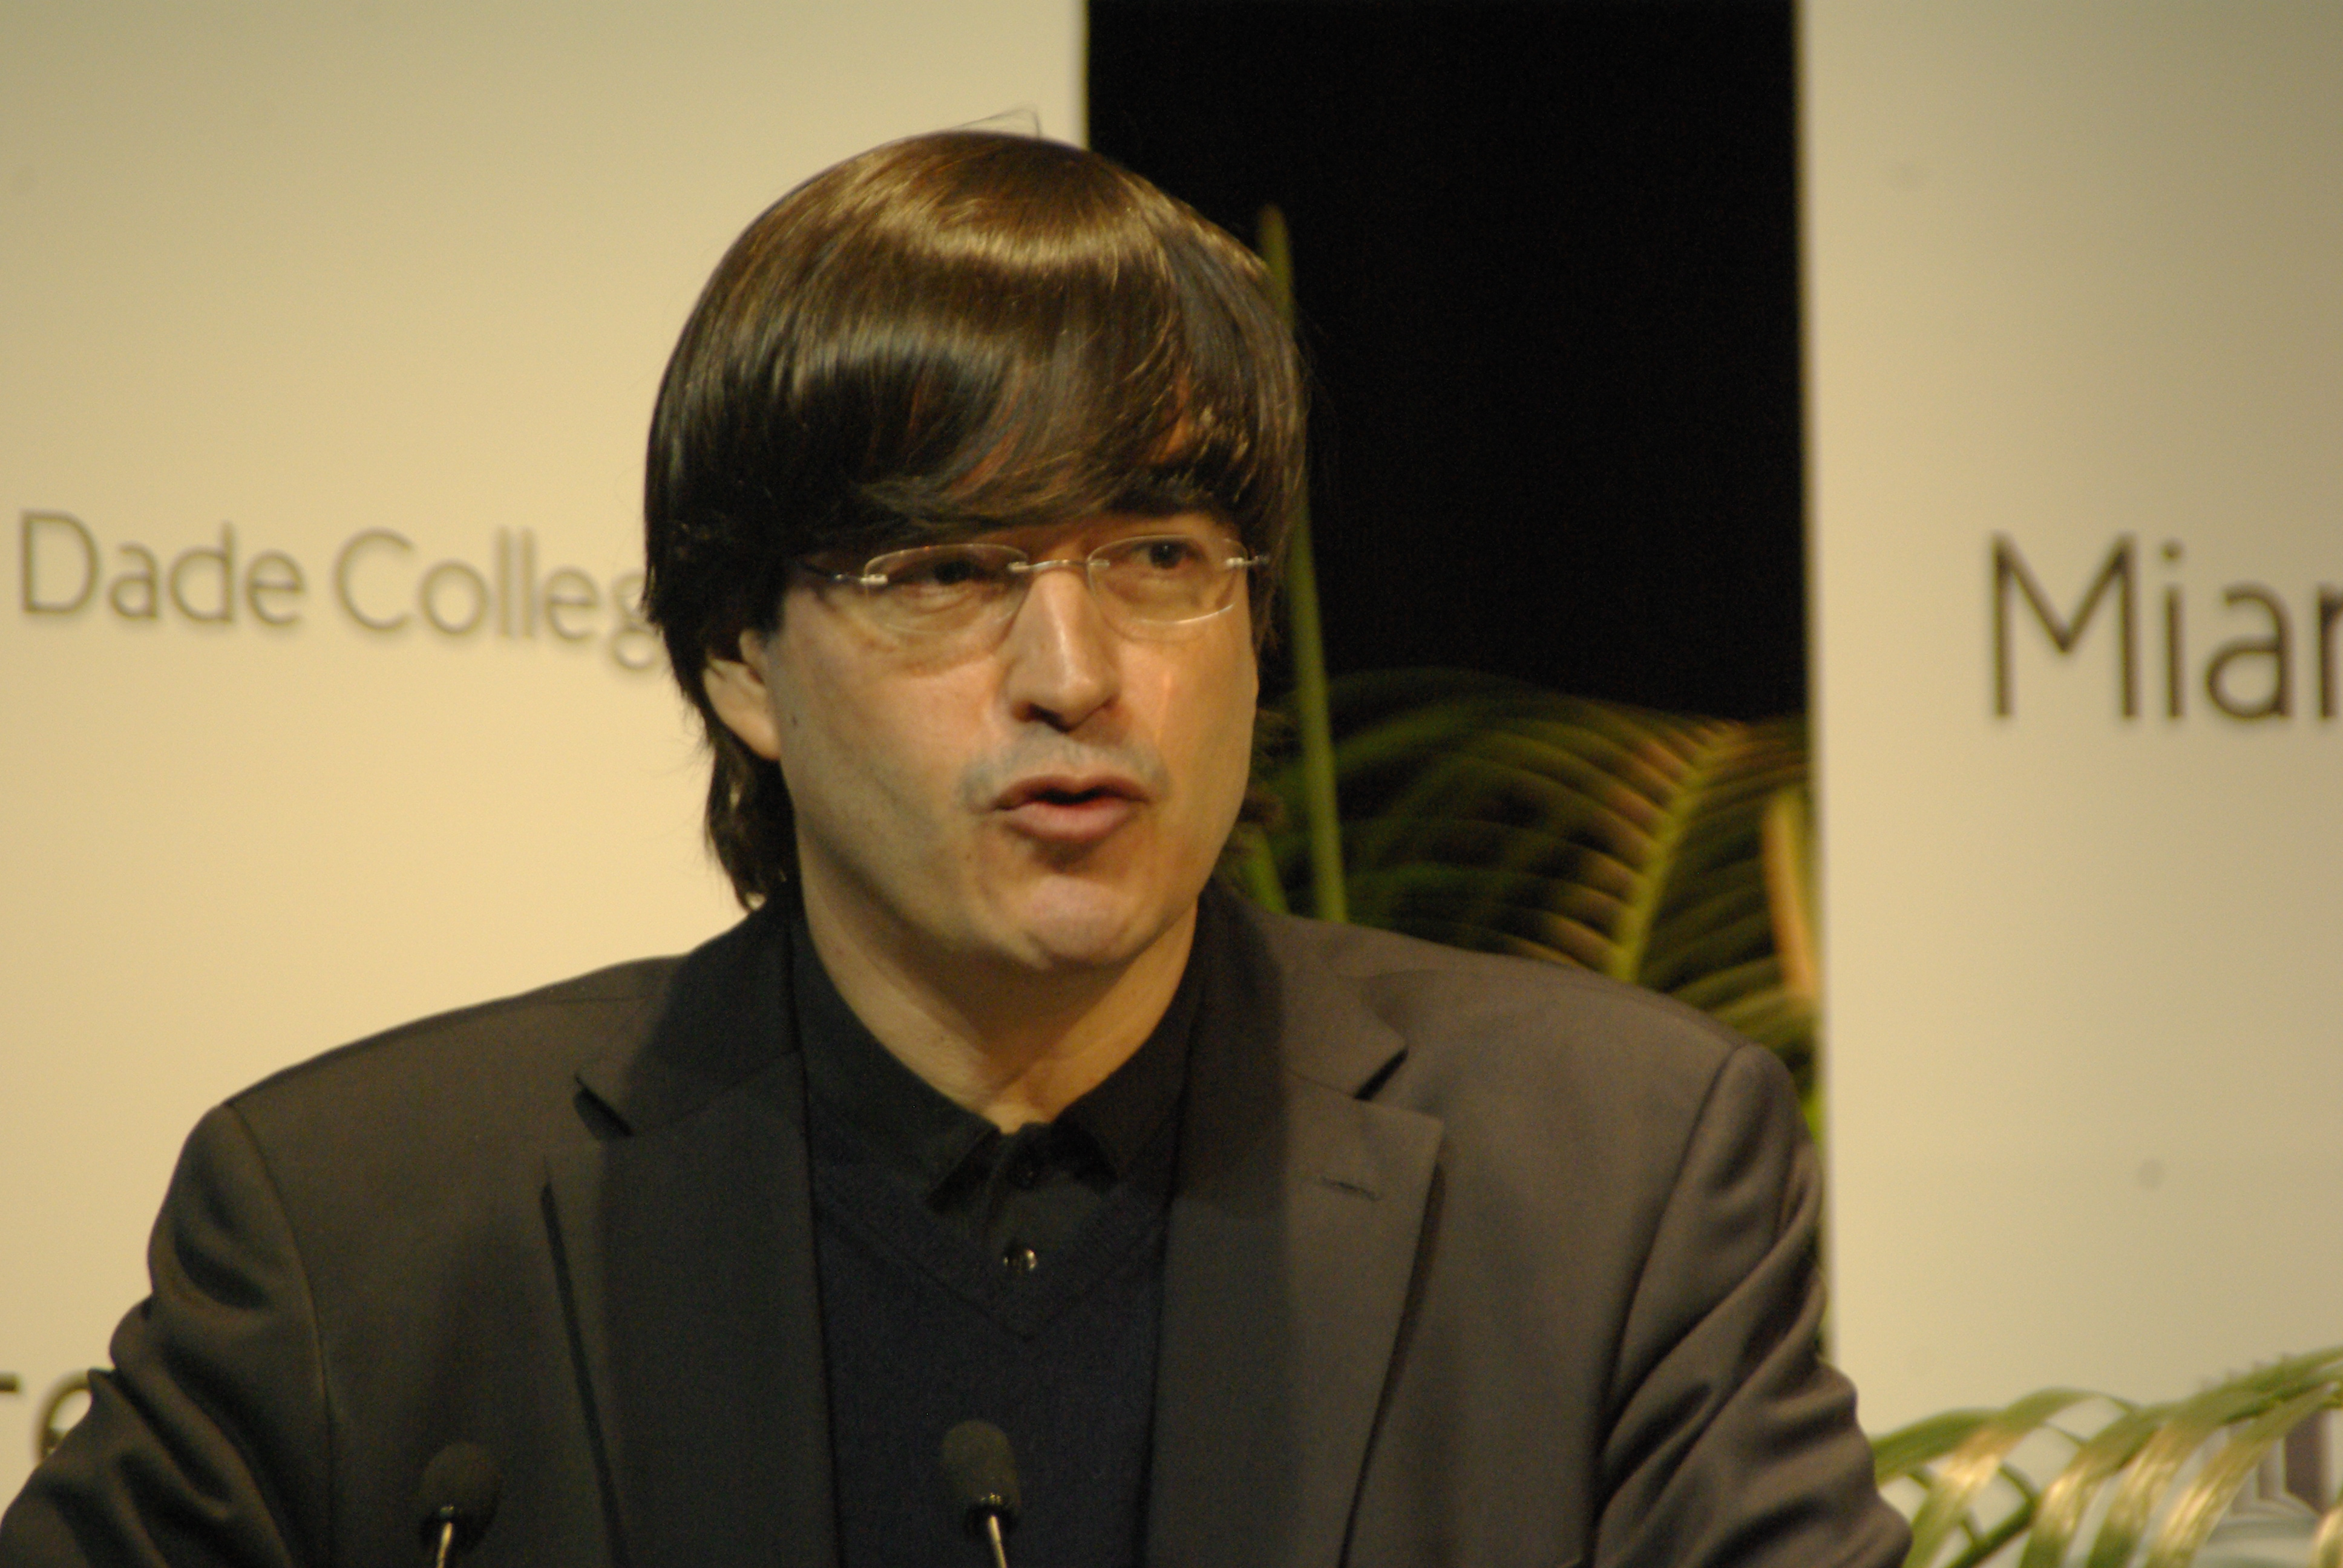 Frases De Jaime Bayly 11 Citas Frases De Famosos Spending too much time in soccer games at school, his low academic. frases de jaime bayly 11 citas